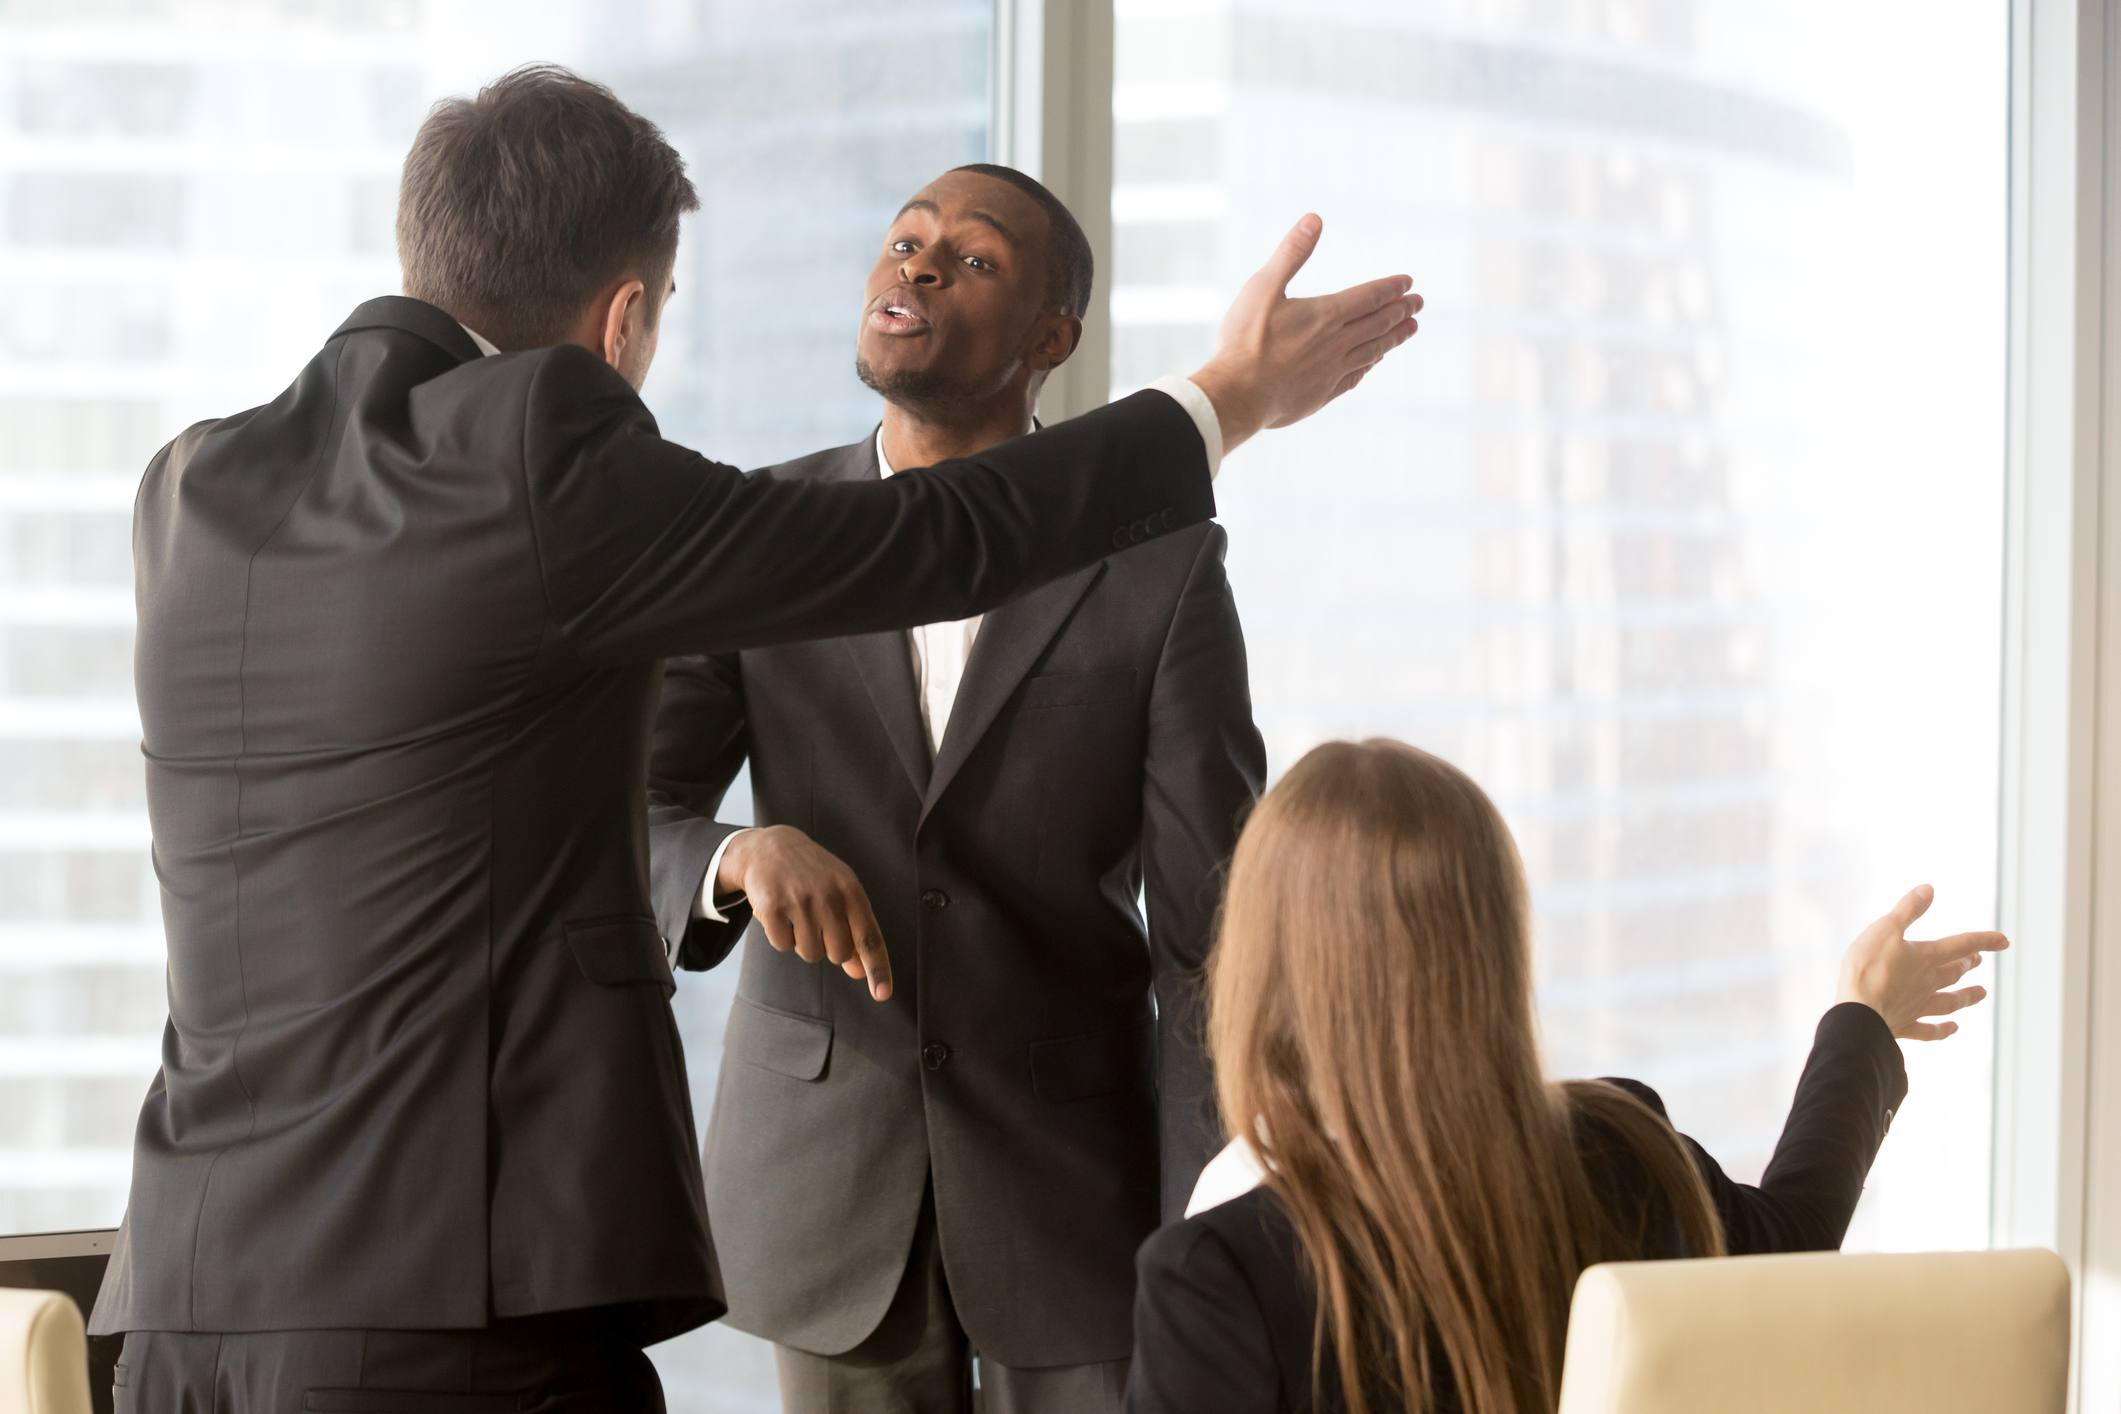 Business people gesturing during a heated argument.